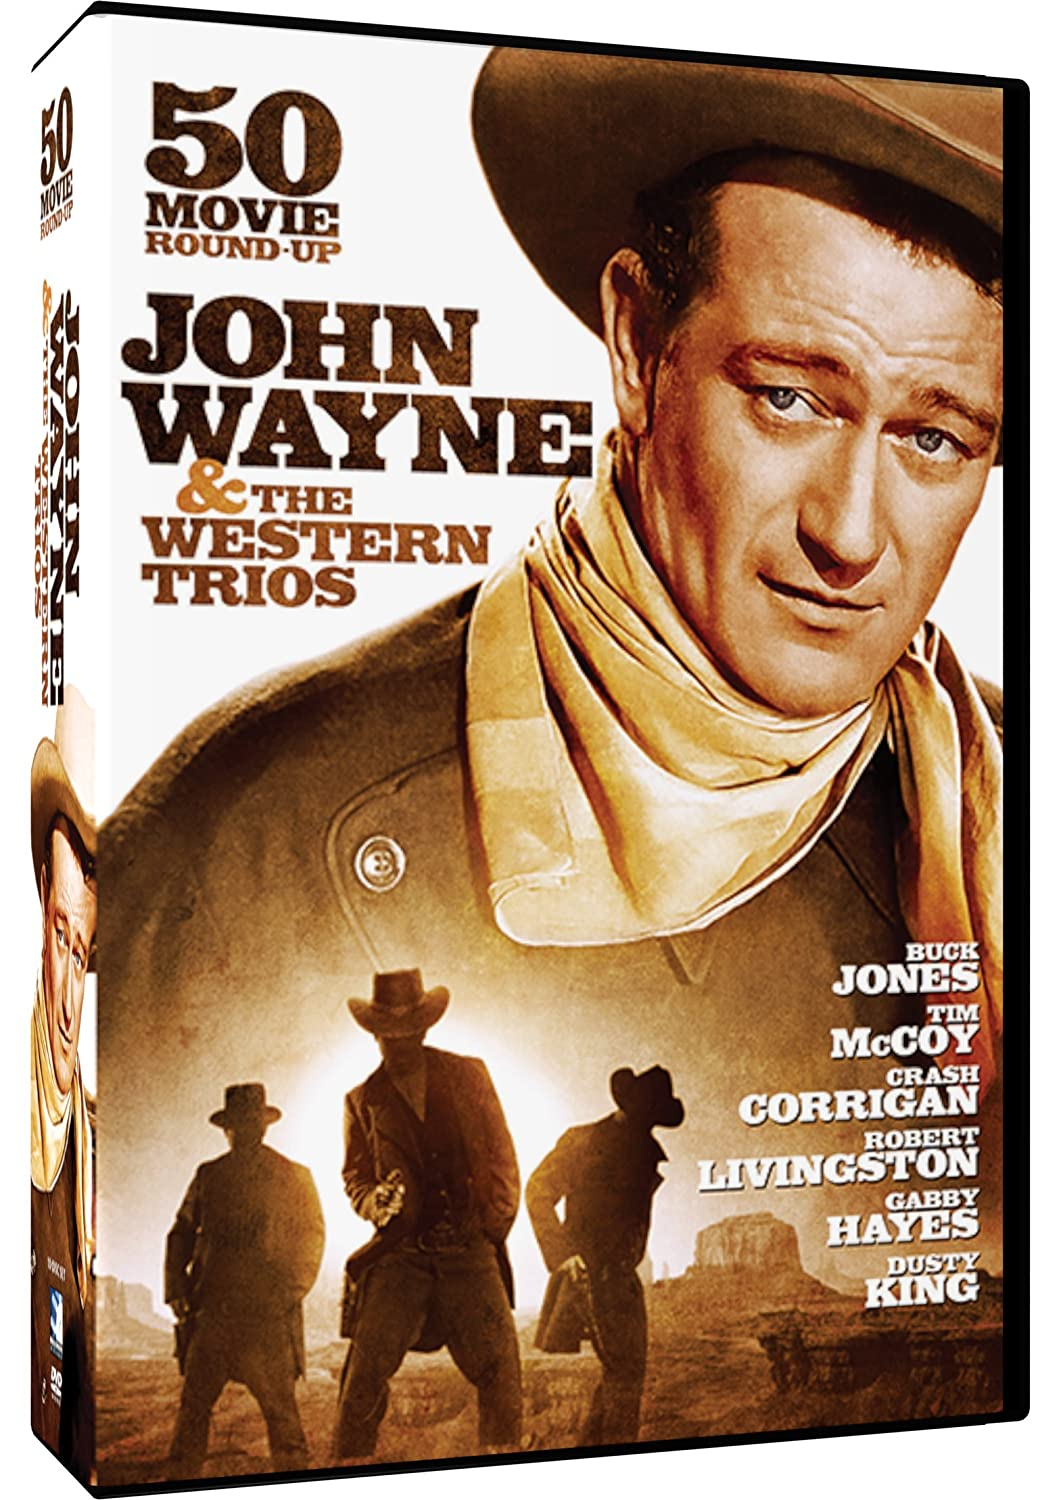 John Wayne & The Western Trios - 50 Movie Roundup: McLintock!, The Three Mesquiteers , Forbidden Trails, The Range Busters and more!